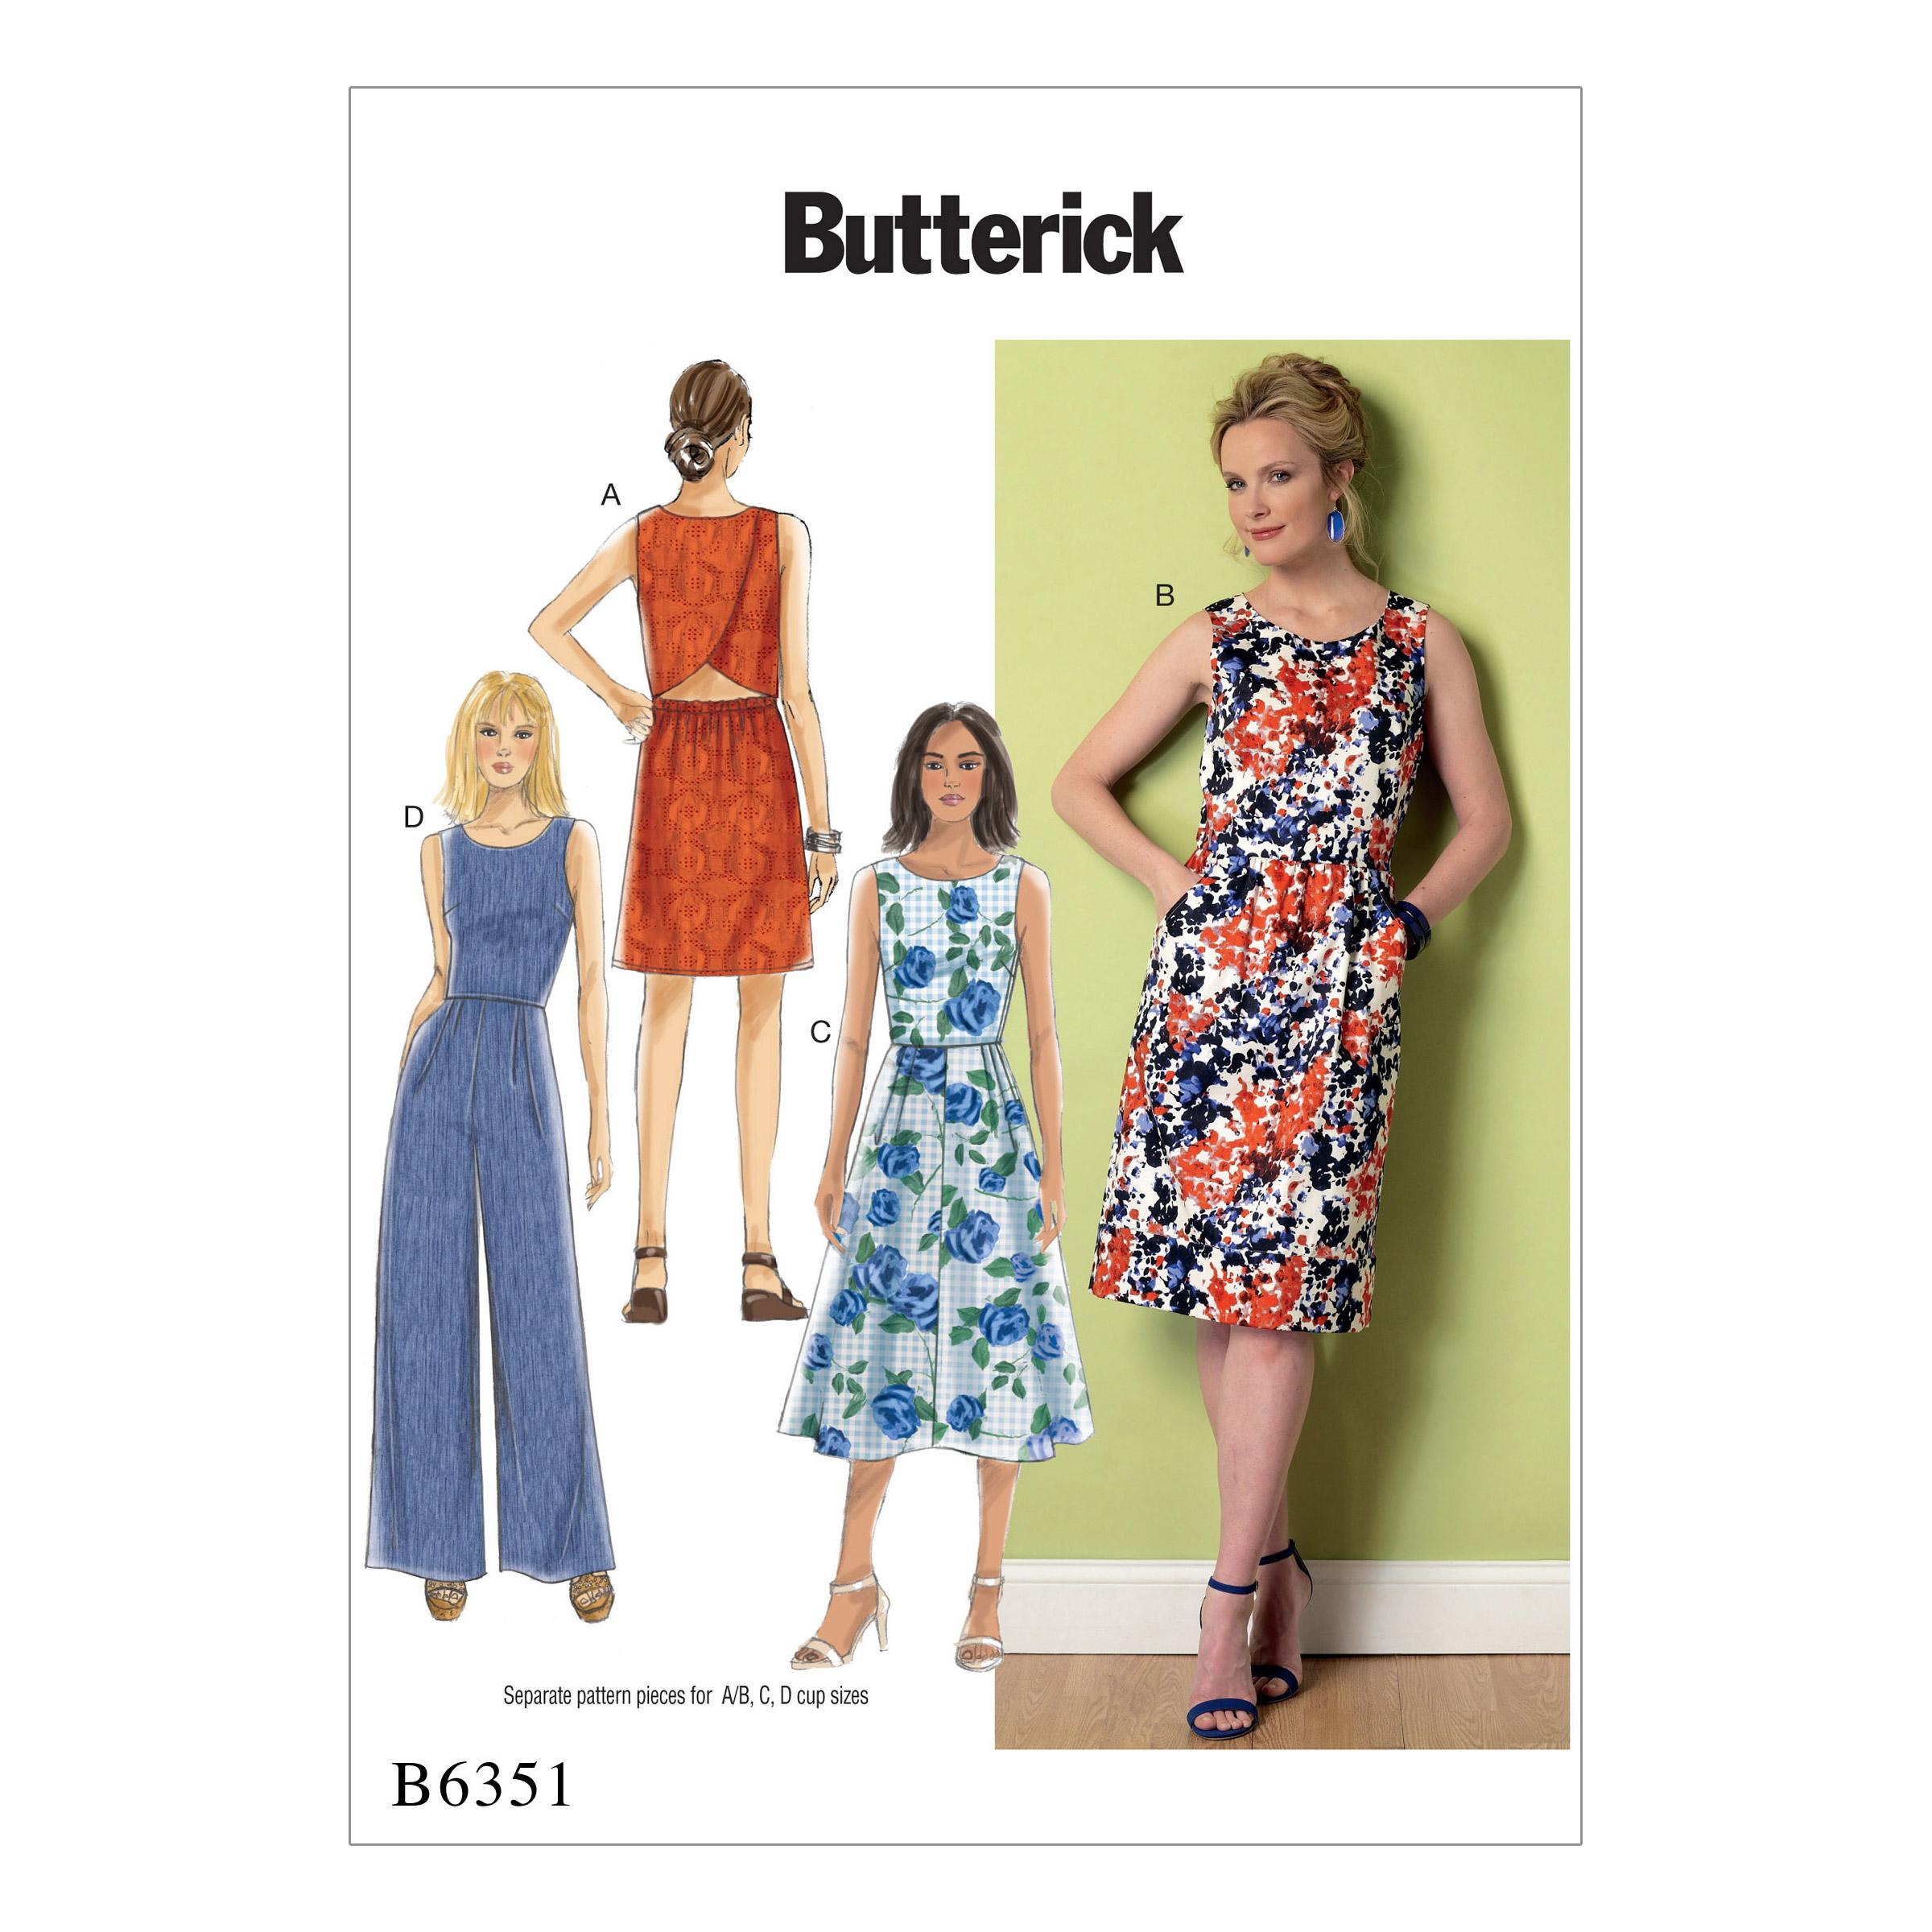 Butterick B6351 Misses' Open-Back, Tulip-Detail Dresses and Jumpsuit